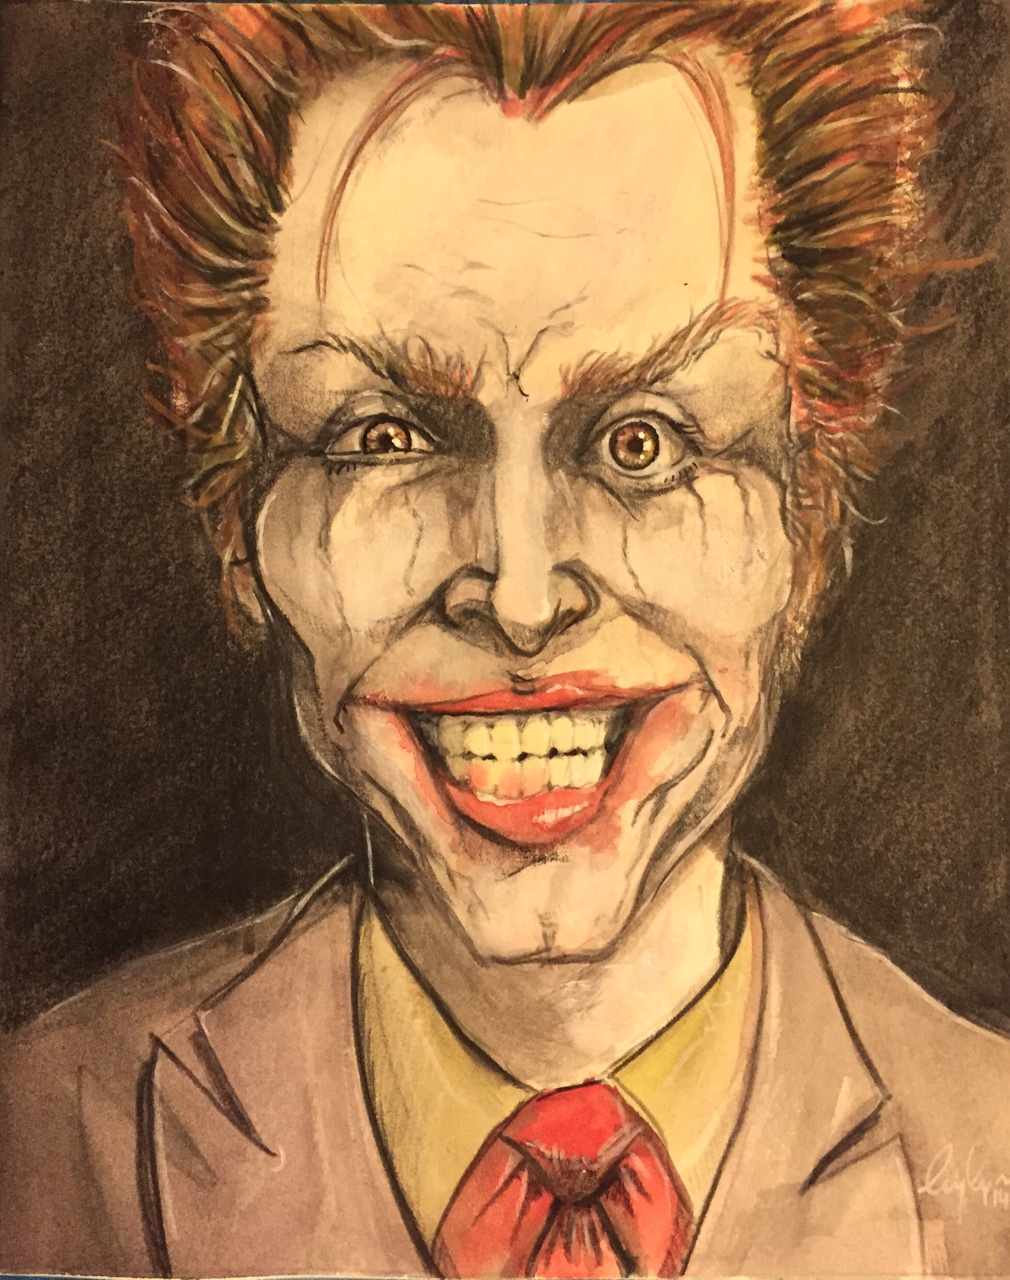 corey-wyer: I did this painting of The Joker with the purpose of auctioning it off. The proceeds will go to benefit Norm Breyfogle (Legendary Batman comic artist) who recently had a terrible stroke. Link Below: http://pages.ebay.com/link/?nav=item.view&alt=web&id=271727833538 It's not too late to make a bid! Jump in!